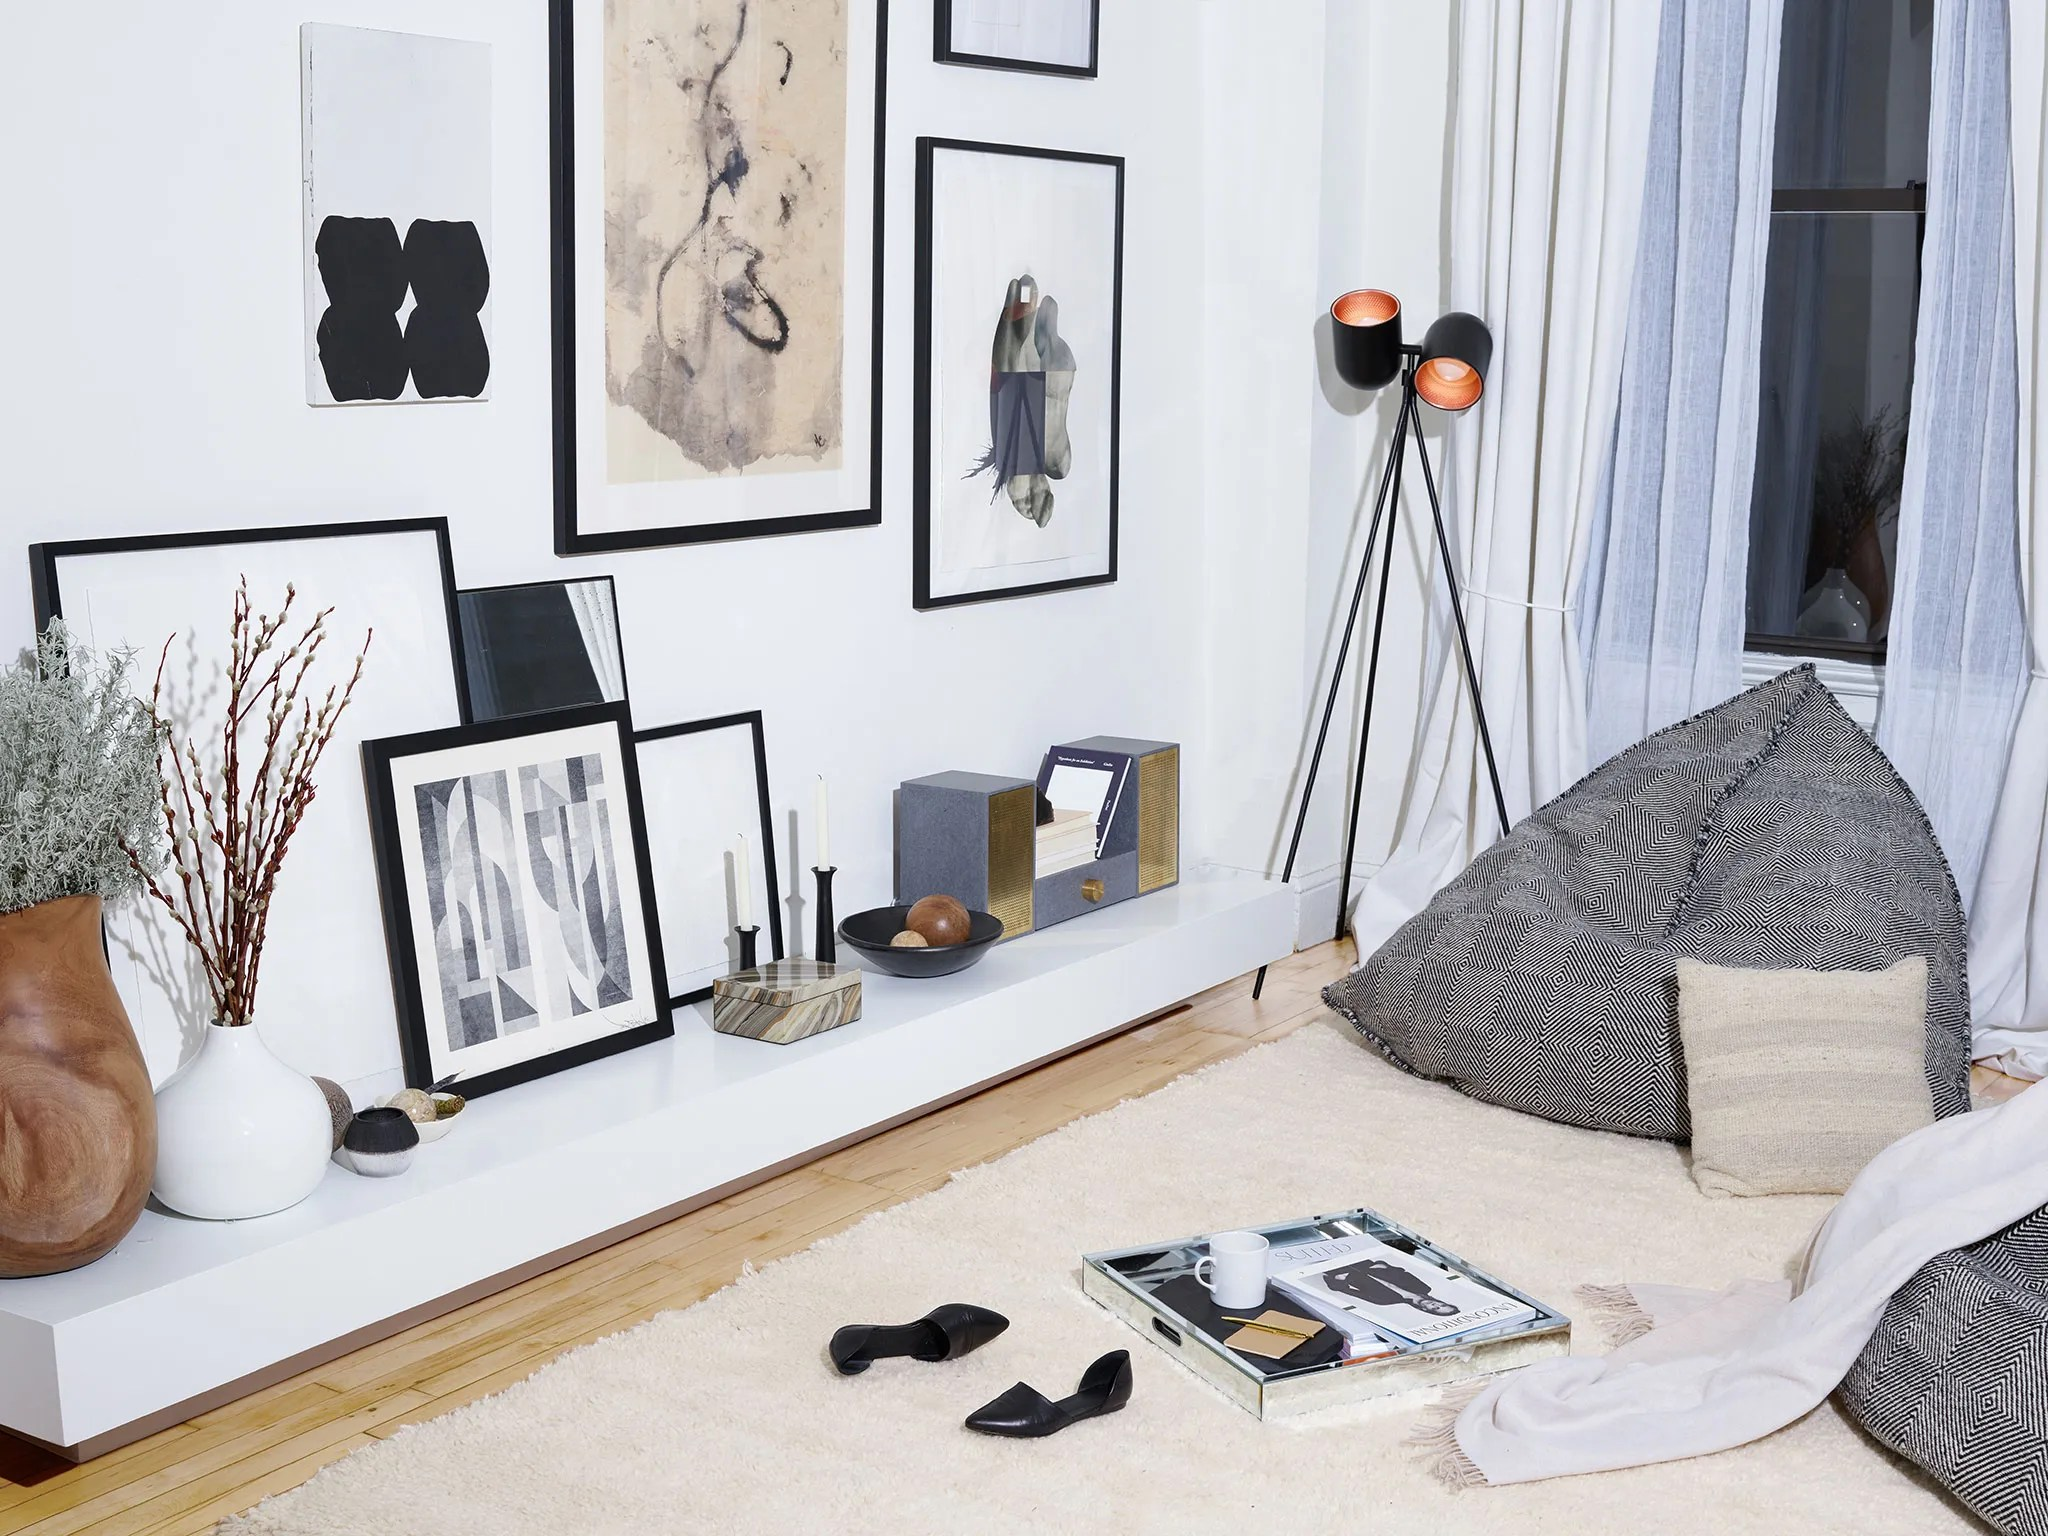 how to make bean bag chair pub chairs clearance the grown-up way do beanbags | architectural digest